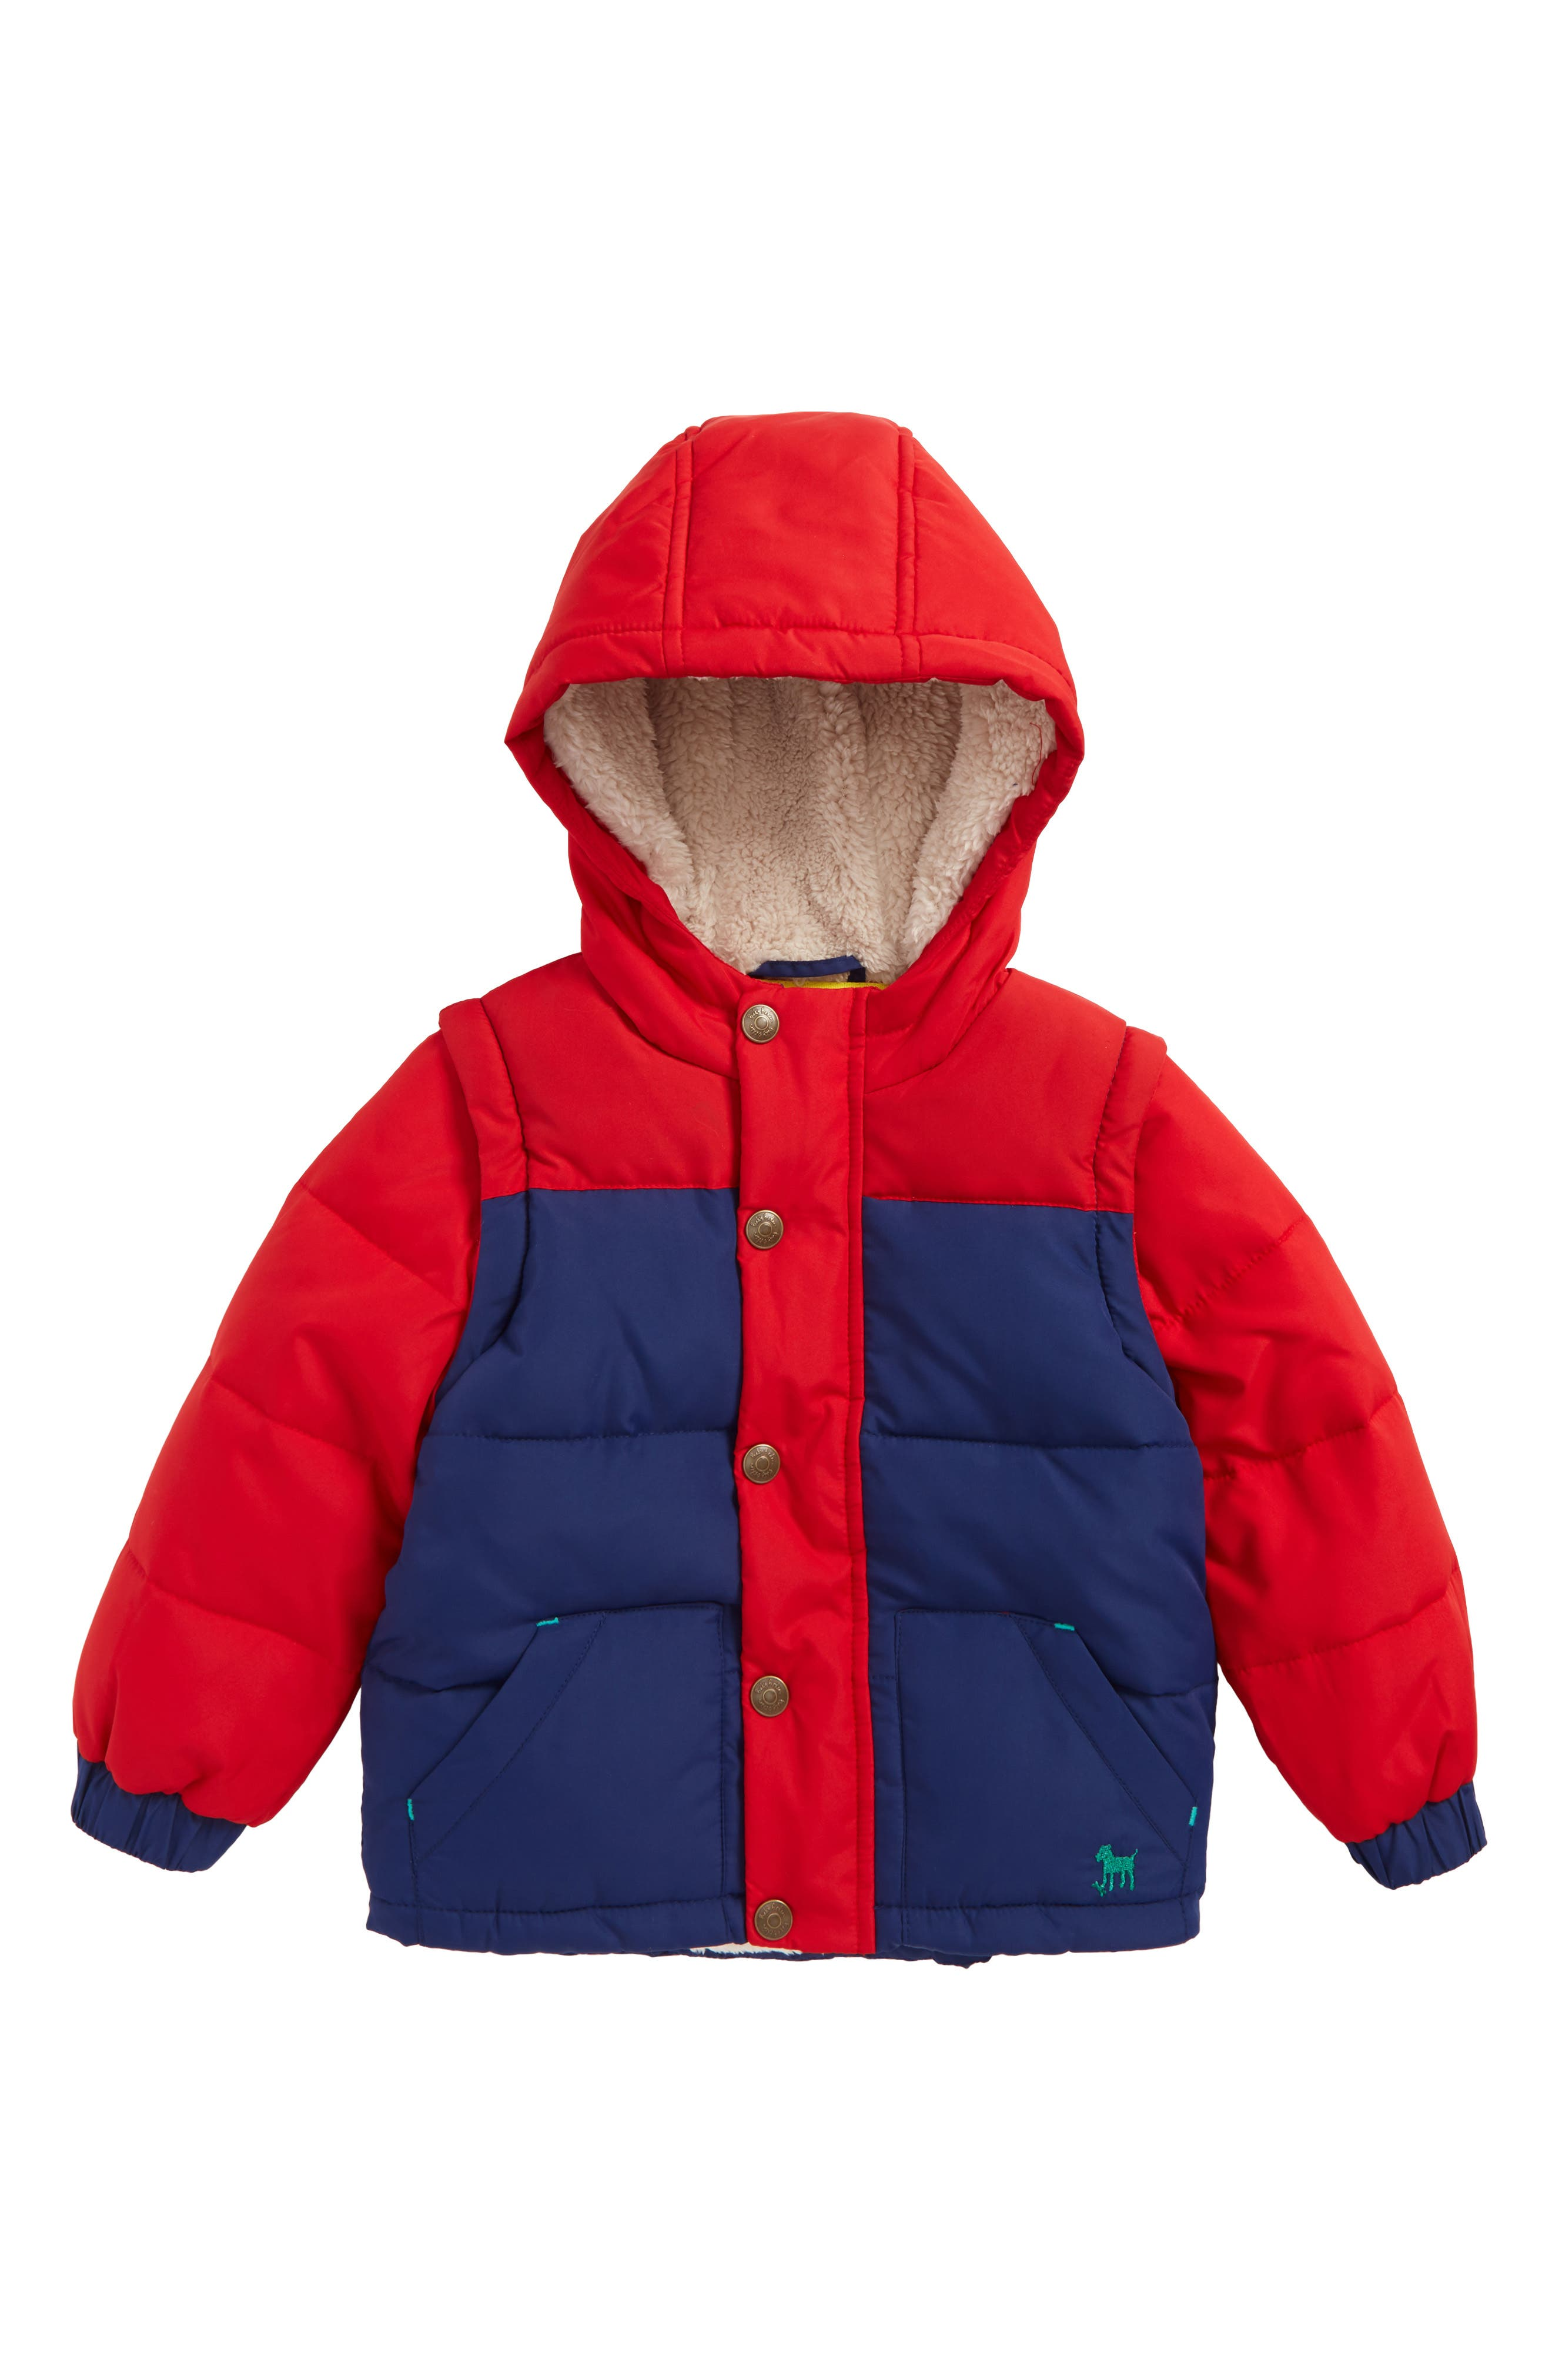 Alternate Image 1 Selected - Mini Boden 2-in-1 Cozy Jacket (Baby Boys & Toddler Boys)